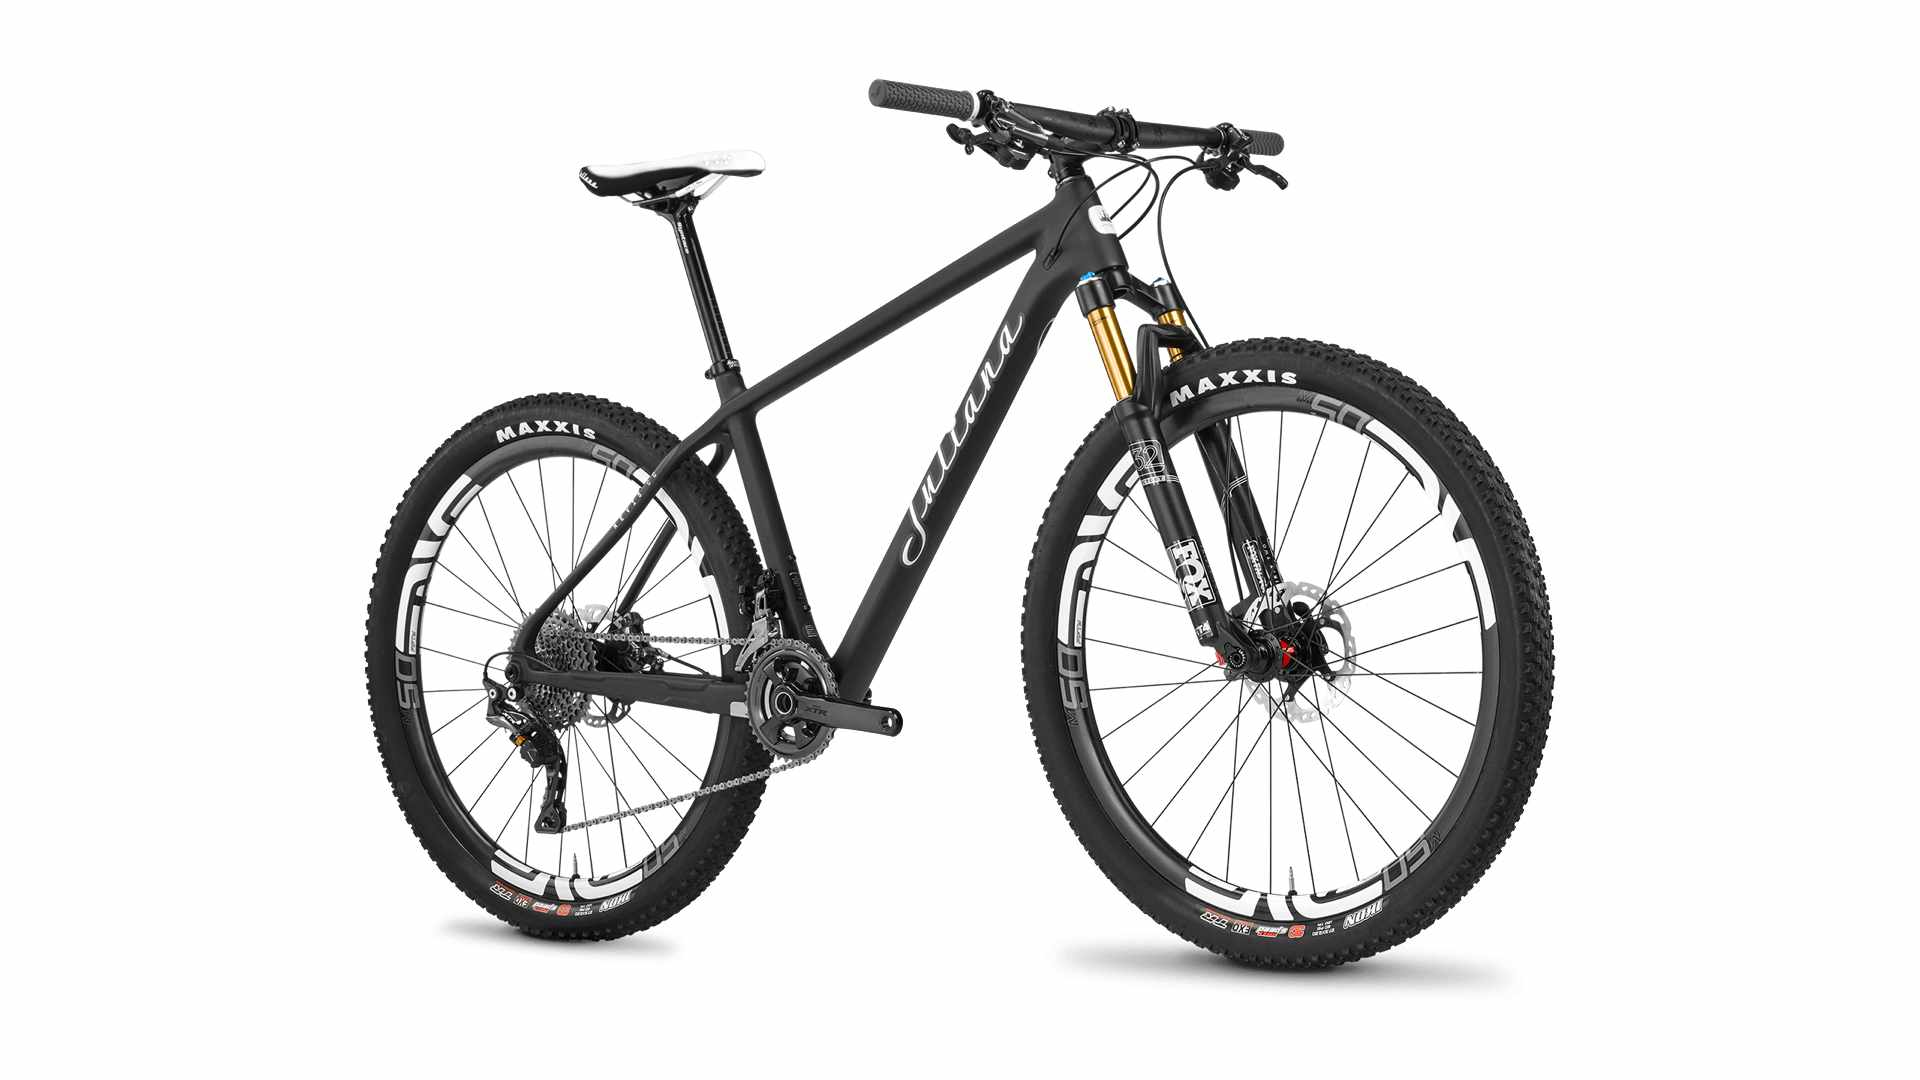 The Juliana Nevis CC - an XC race-ready women's specific hard tail MTB